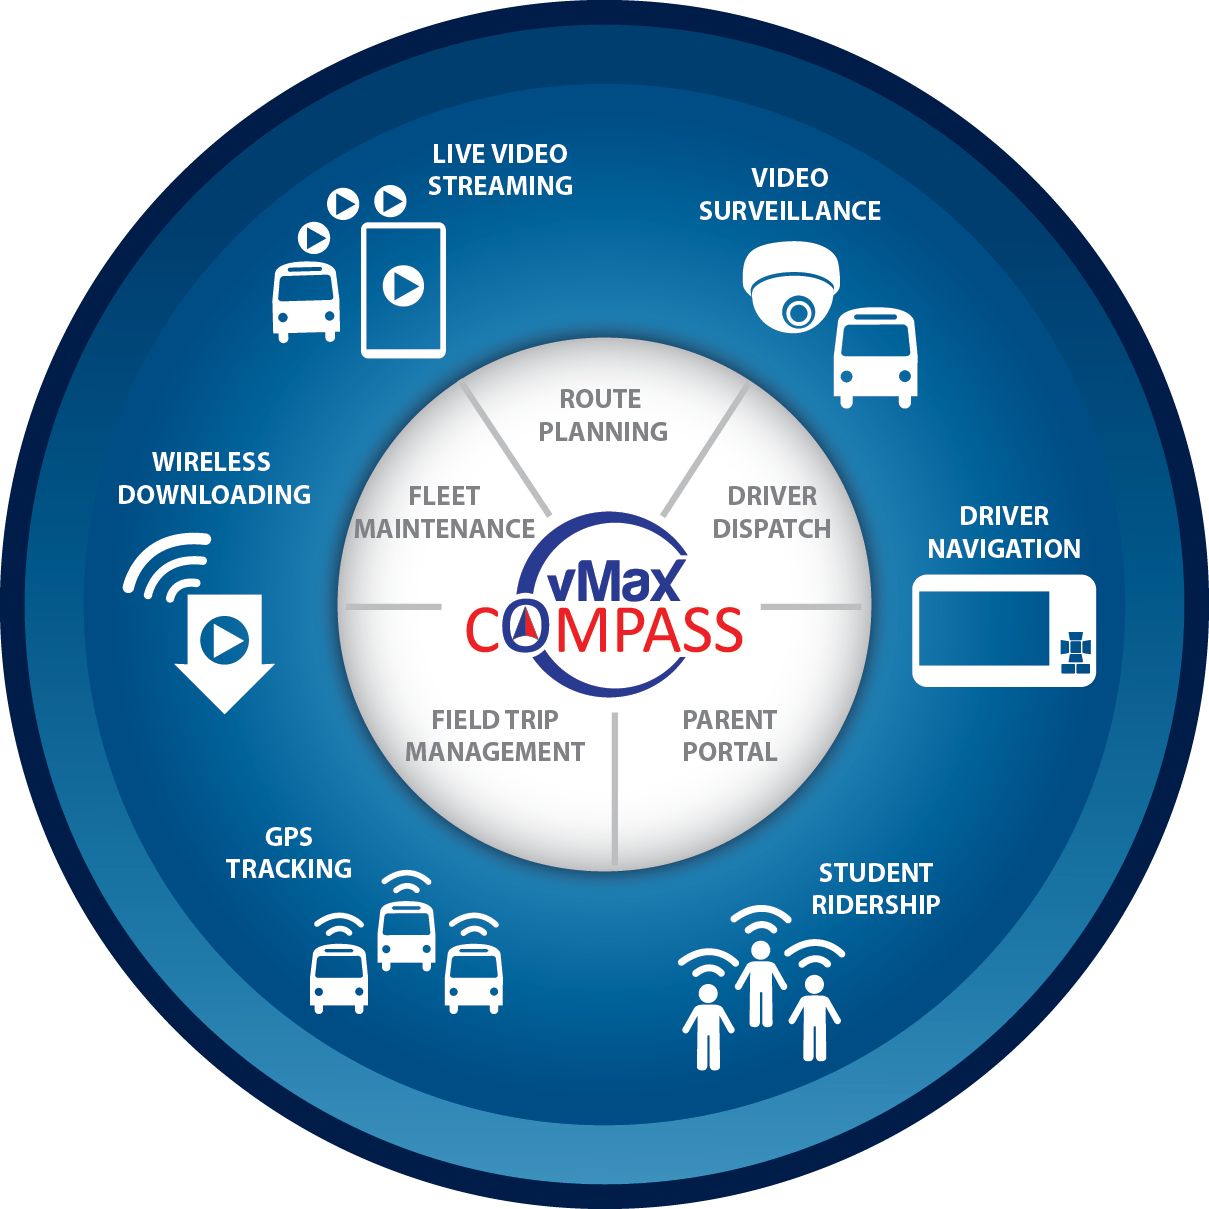 vMax Compass Roadmap new logo v3